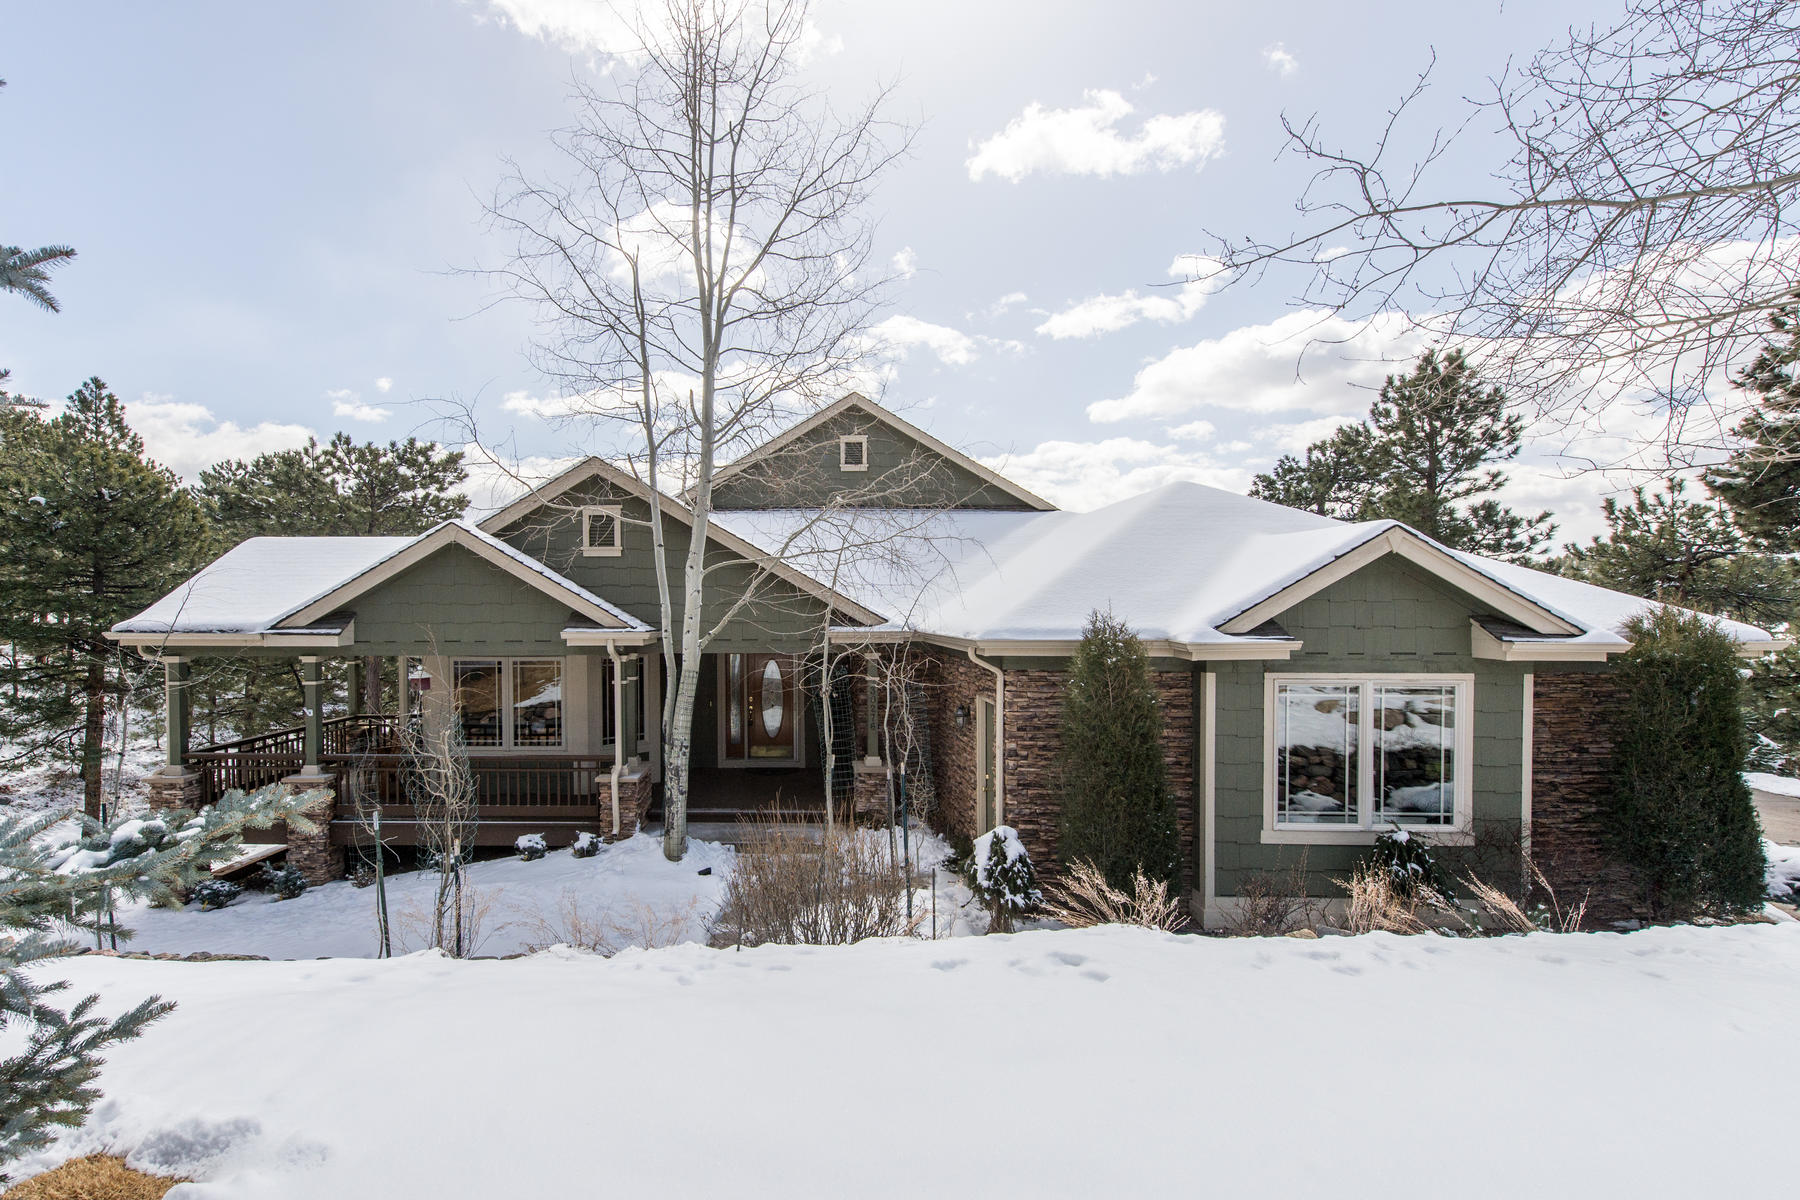 Single Family Home for Active at Classic Mountain Contemporary Home with Professional Landscaping 30276 Telluride Lane Evergreen, Colorado 80439 United States